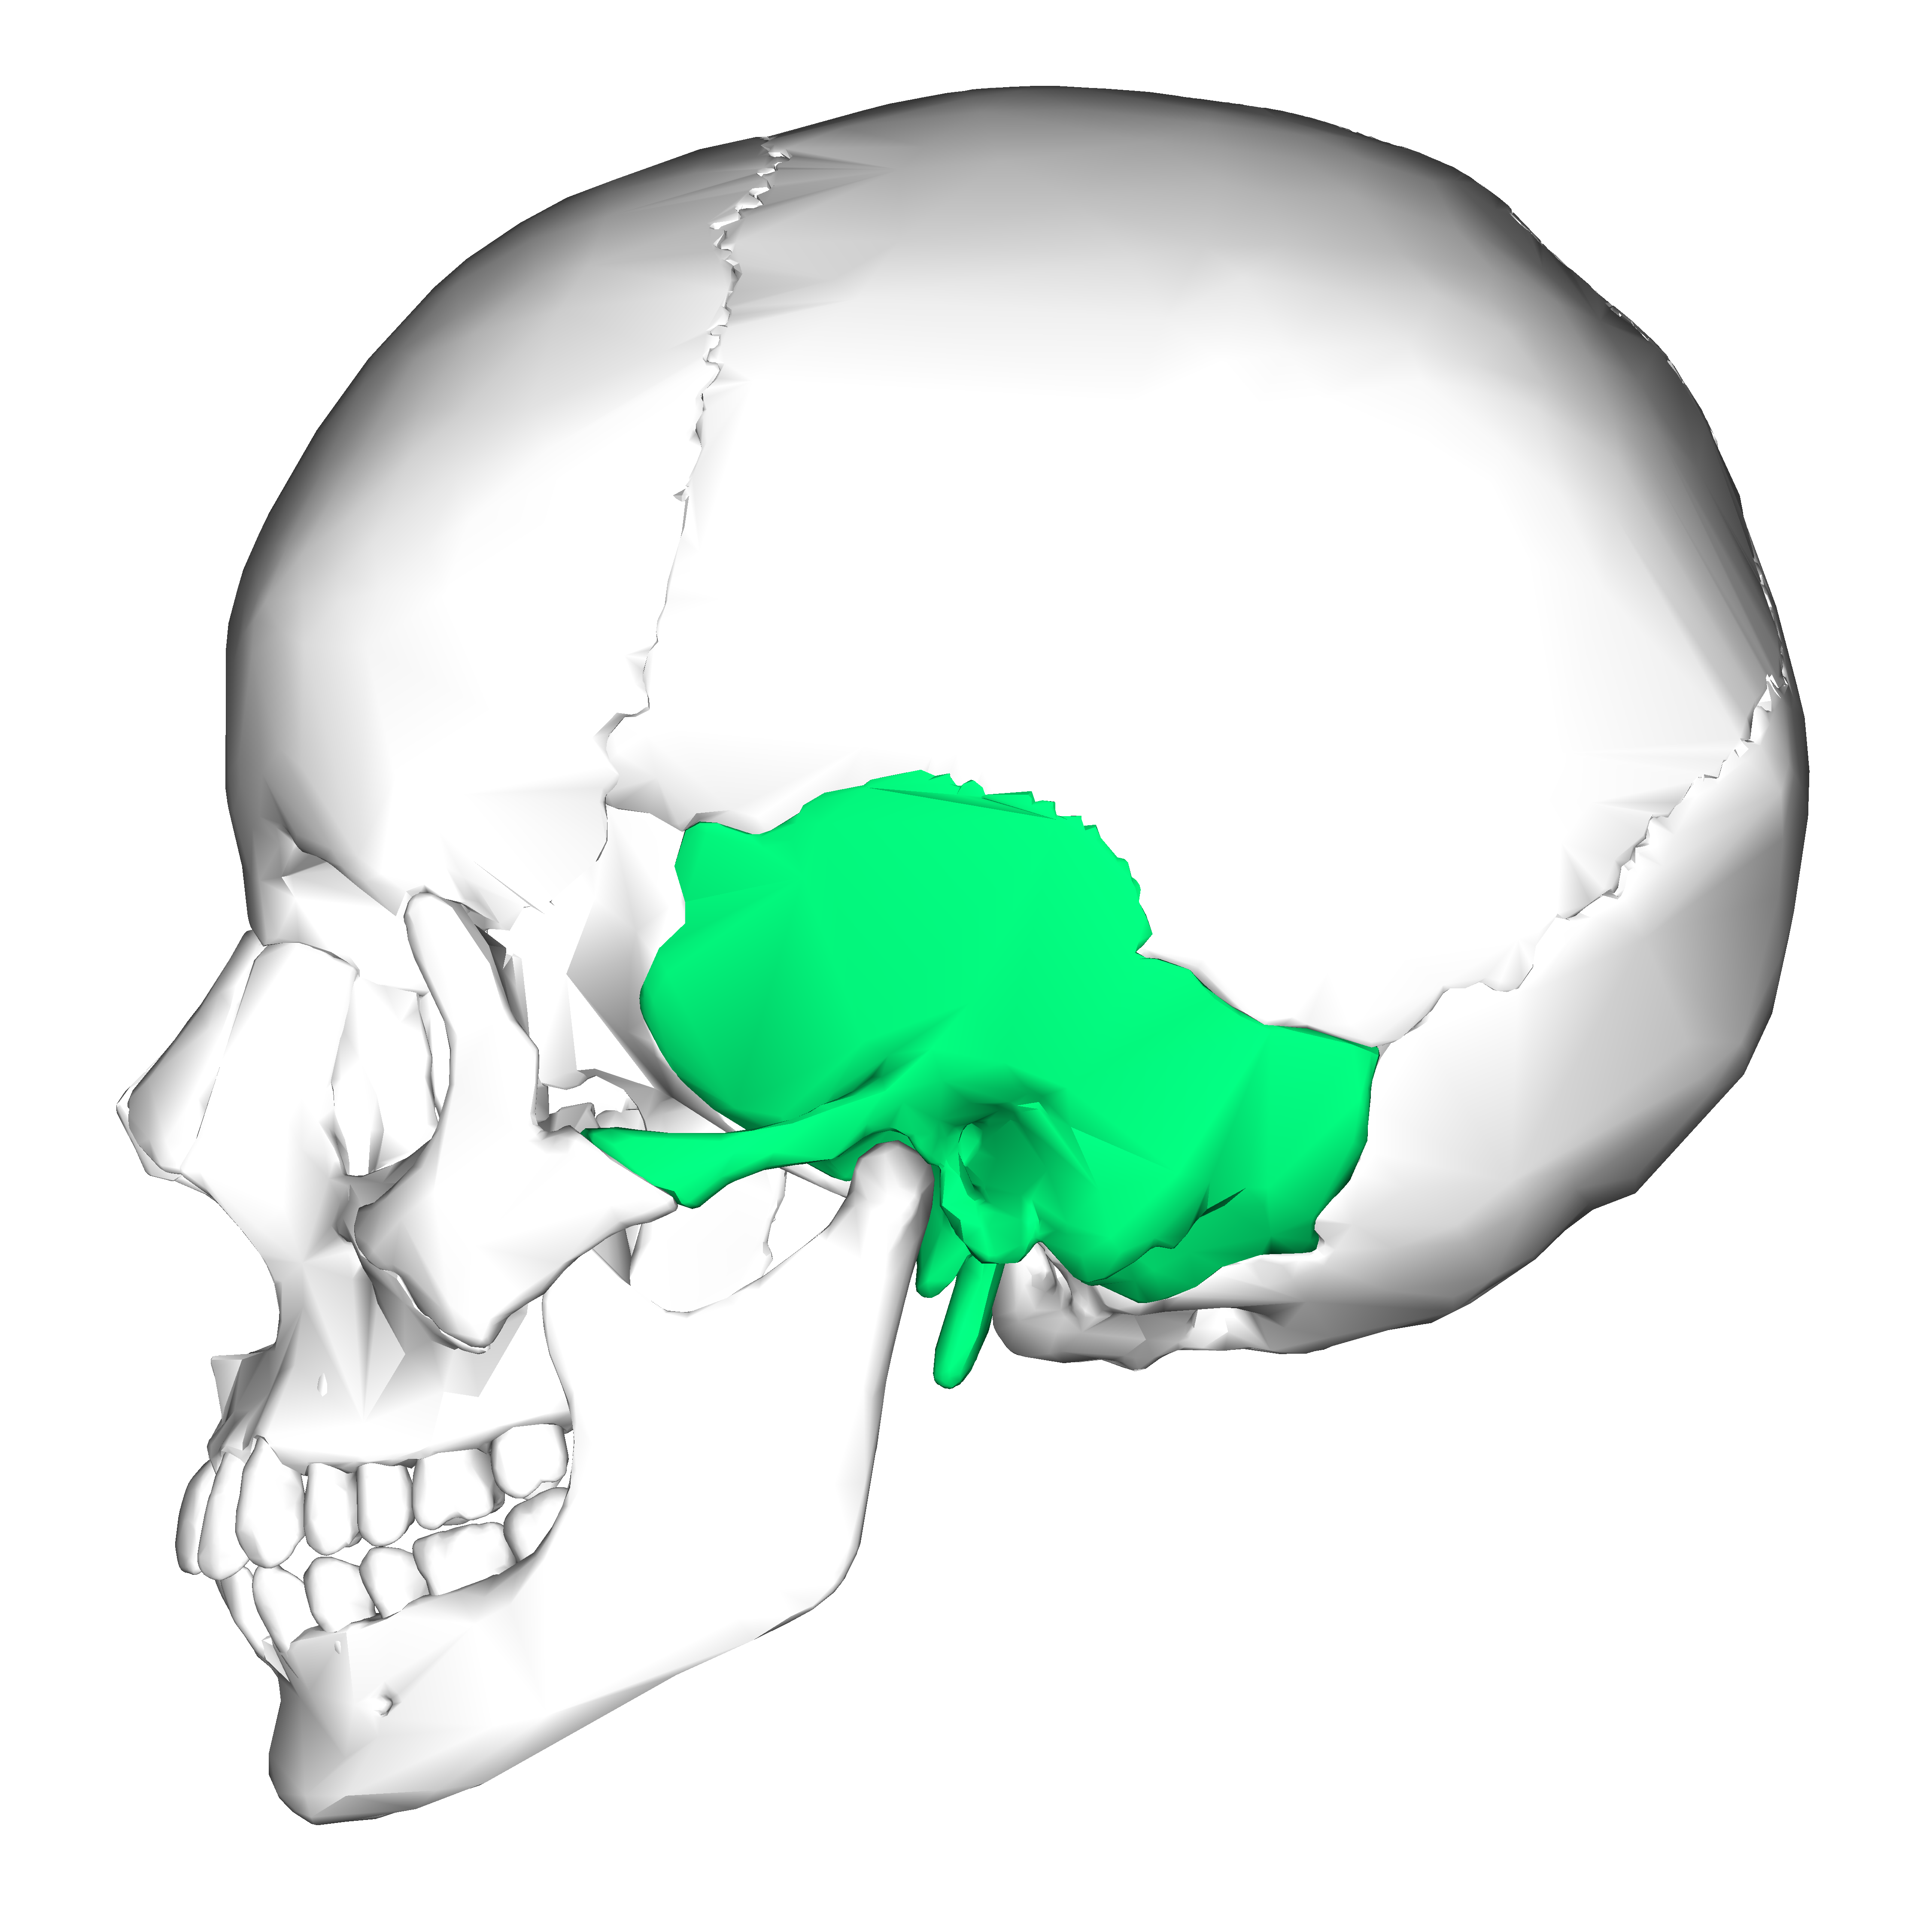 the projection of the temporal bone is the It transmits the inferior alveolar neurovascular bundle from the infratemporal fossa to the  the projection of bone medial to  fossa of the temporal bone.